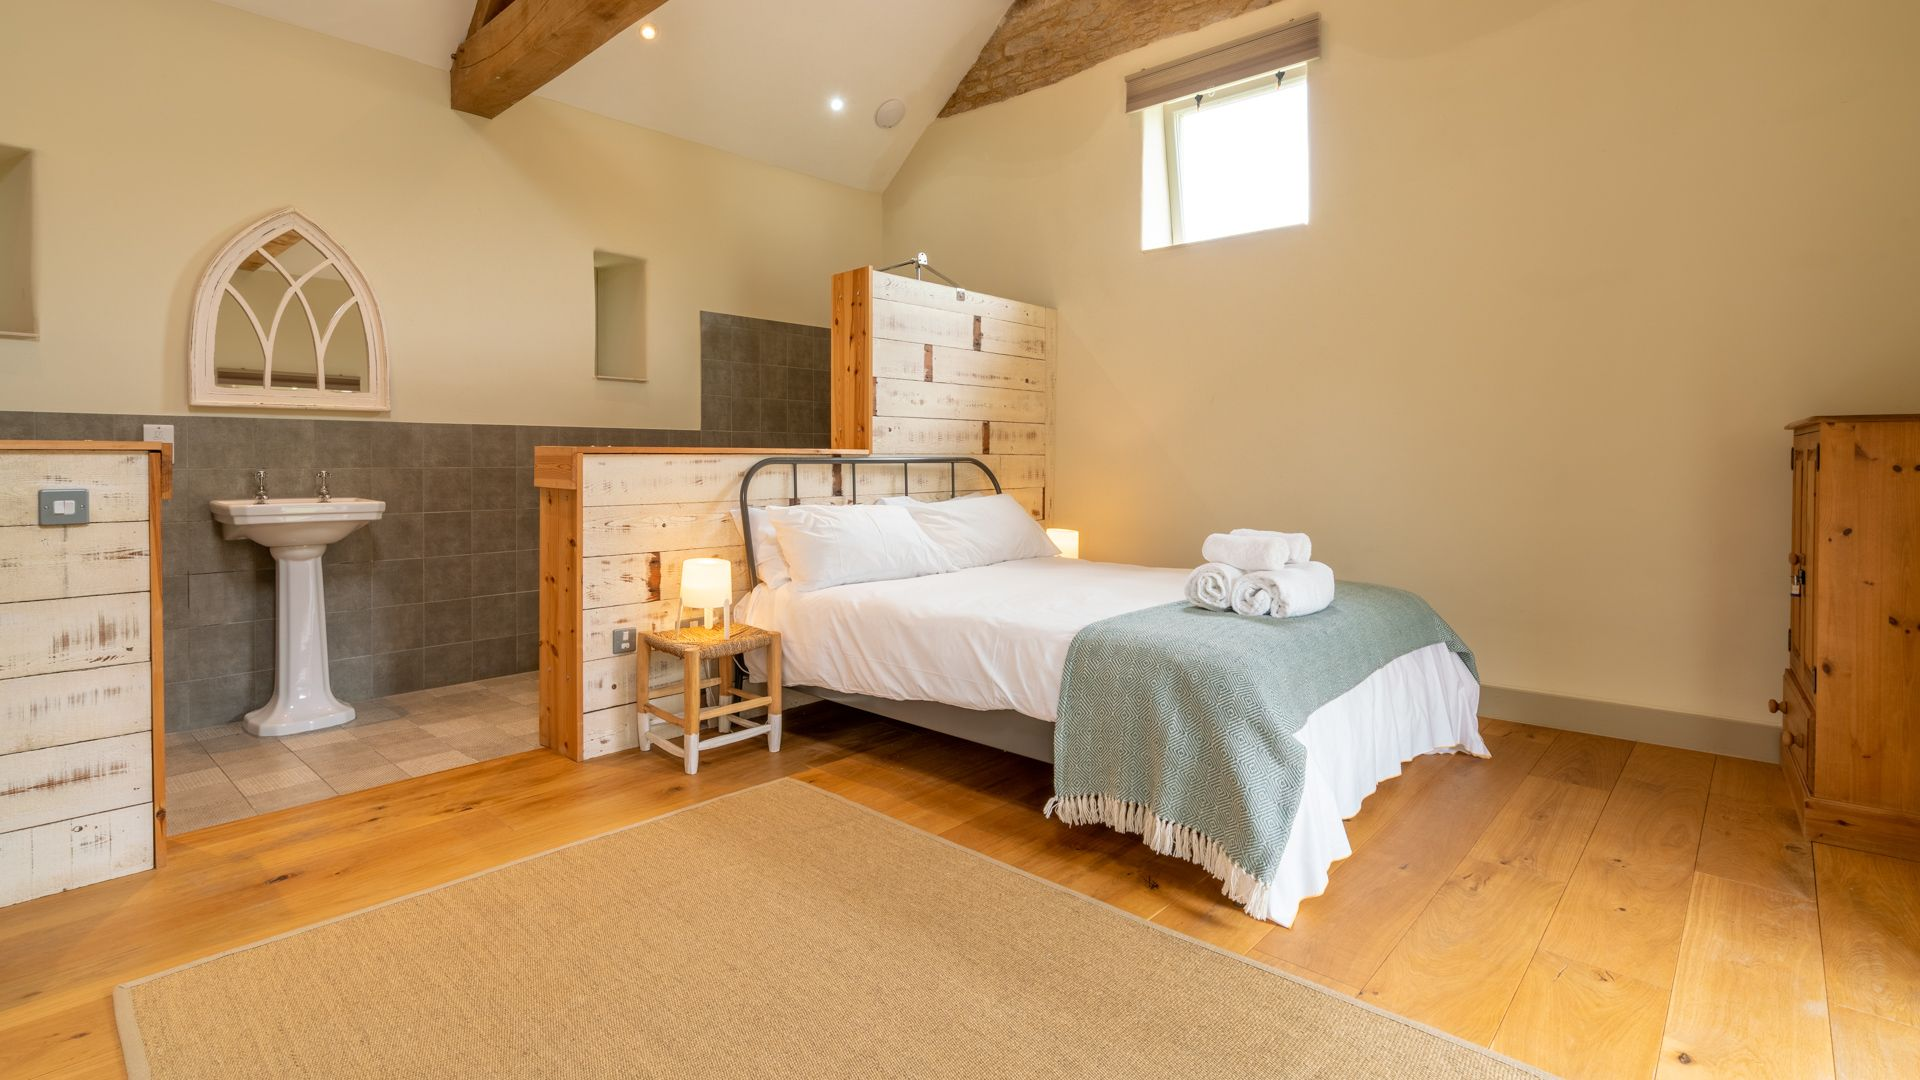 Bedroom & en-suite wet room, Bull Pen, Bolthole Retreats